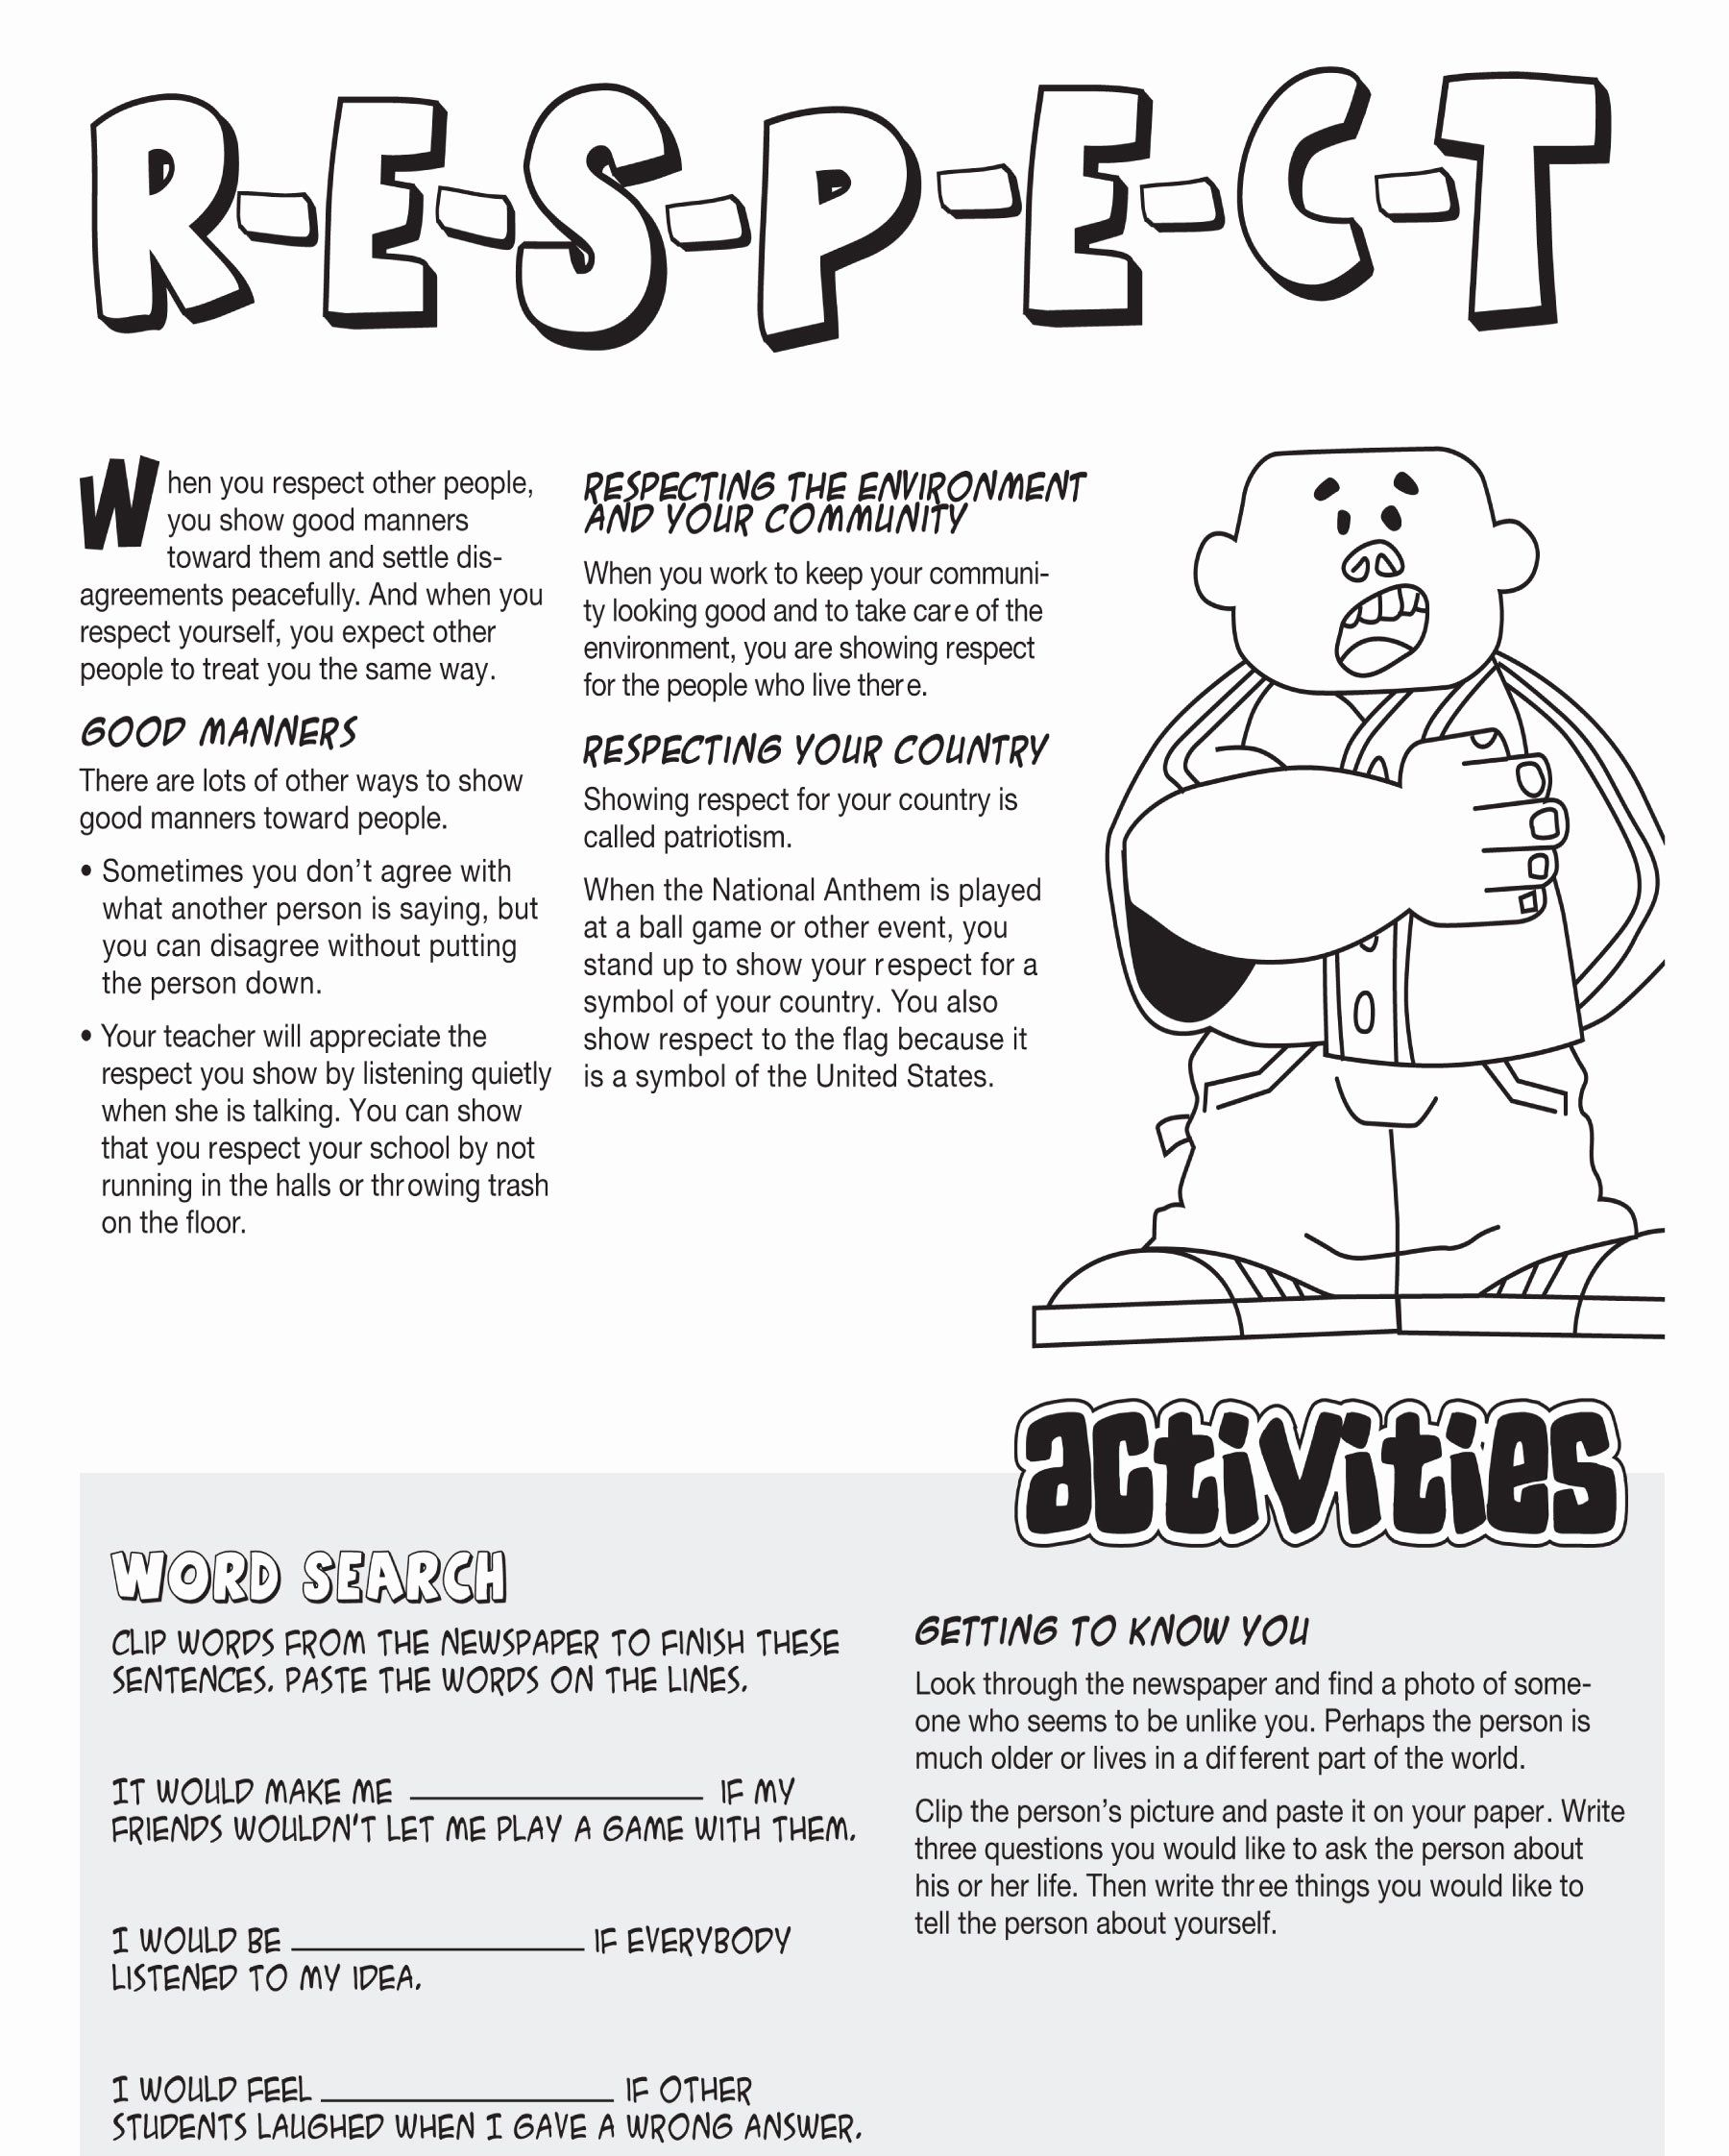 Respecting Others Property Worksheet Inspirational Grand